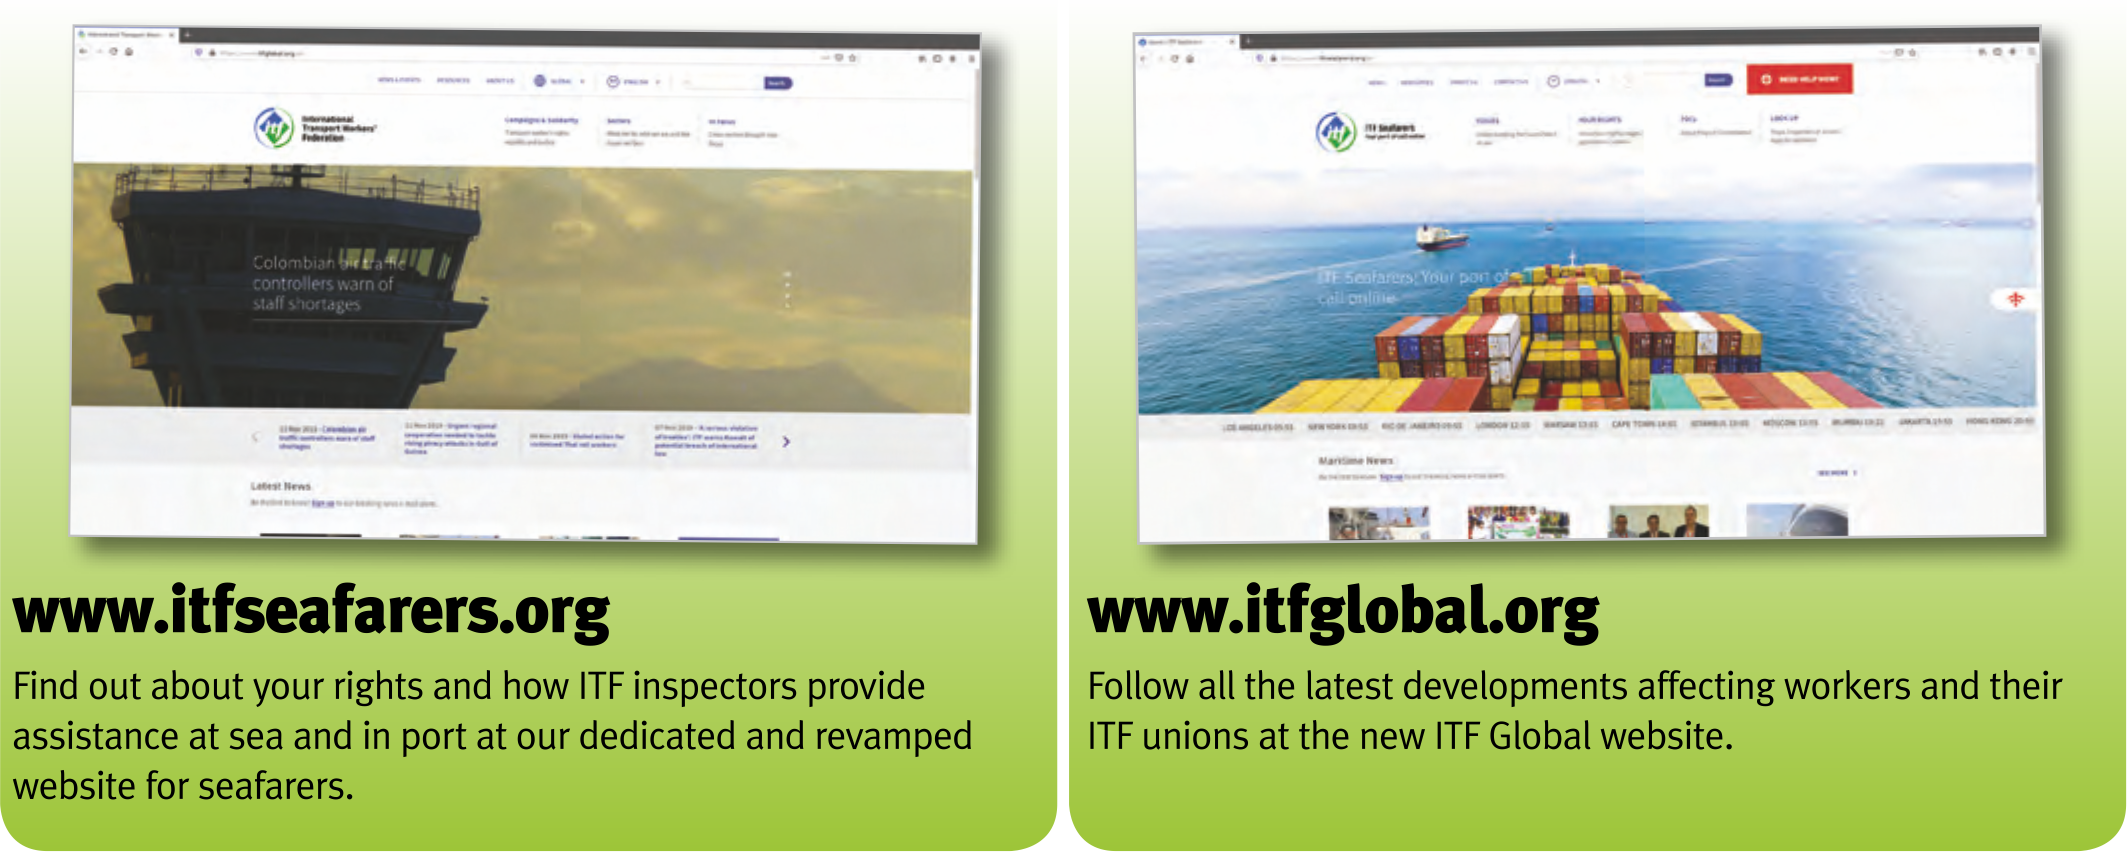 Seafarers - make the ITF your daily port of call for information and advice